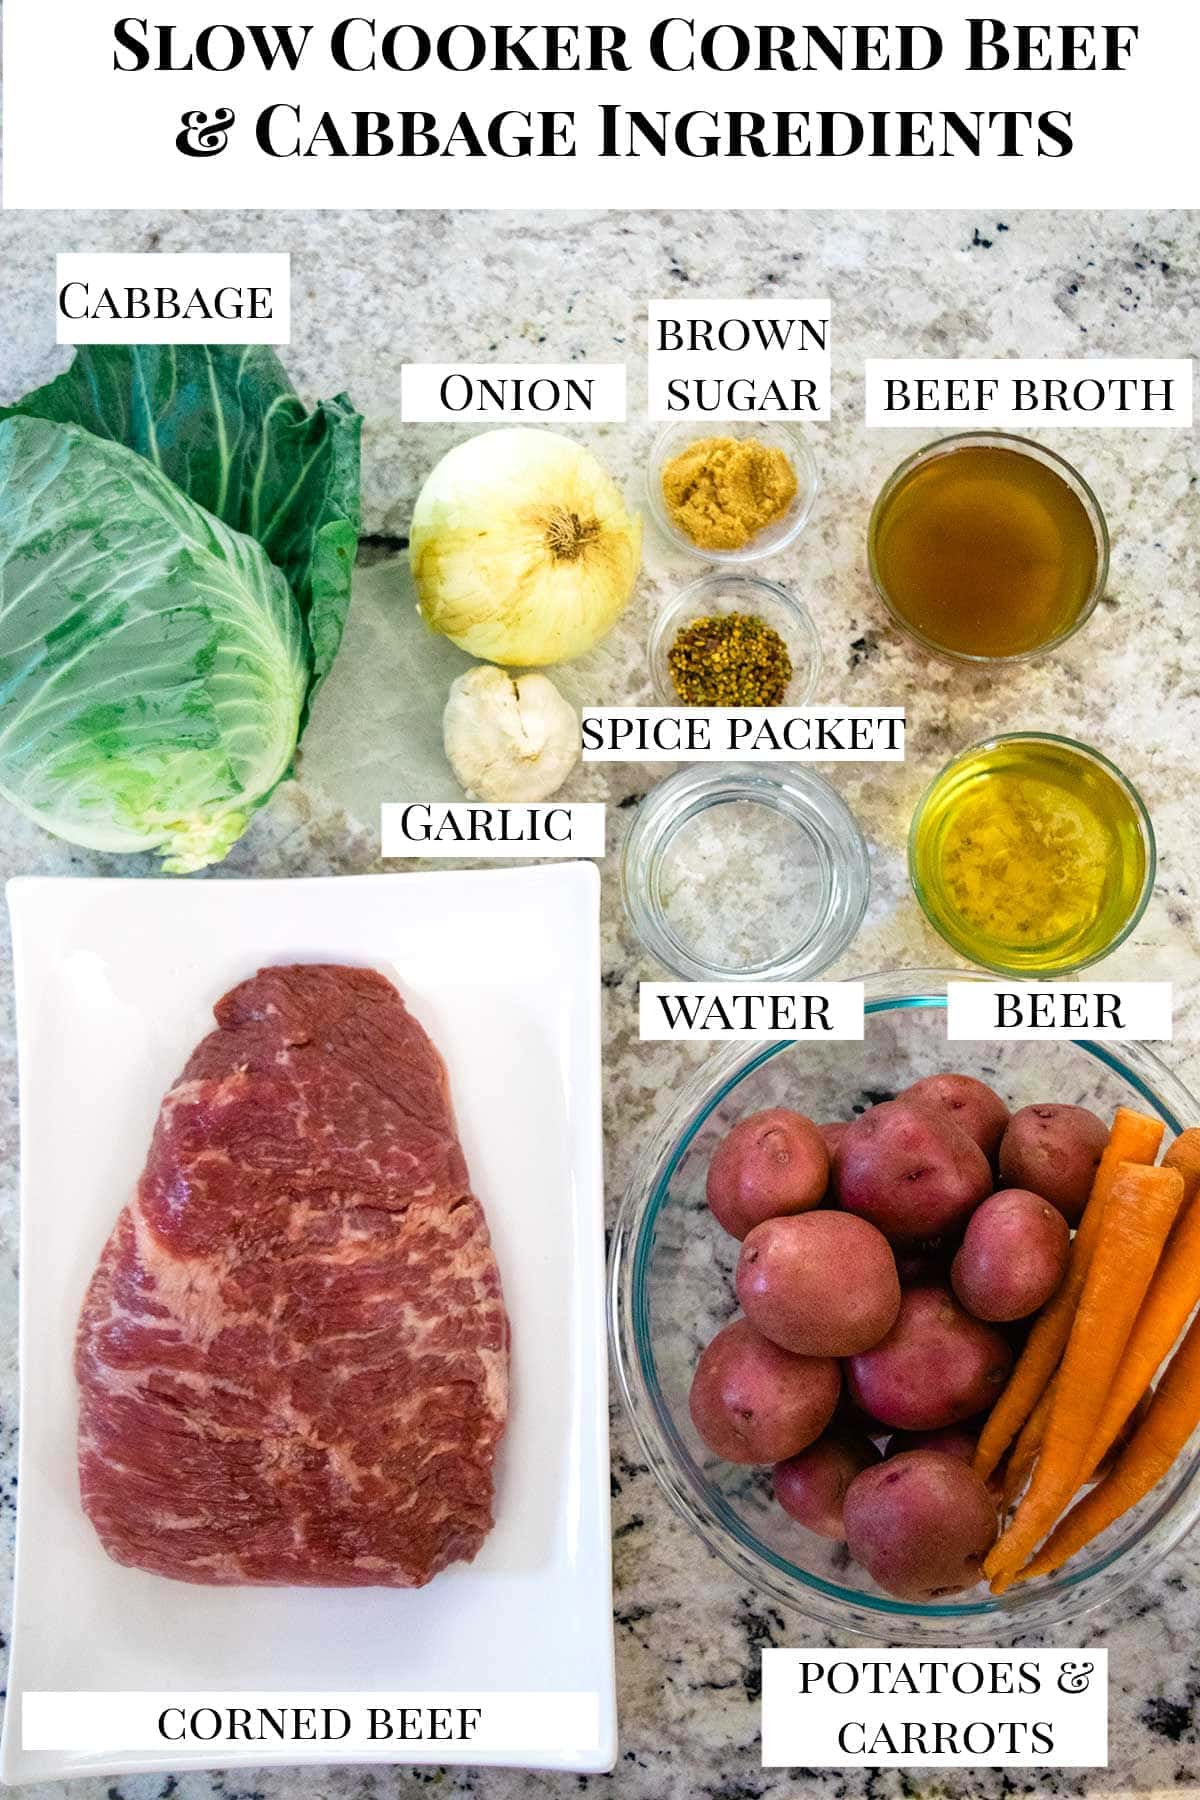 Slow cooker corned beef and cabbage ingredient list image.